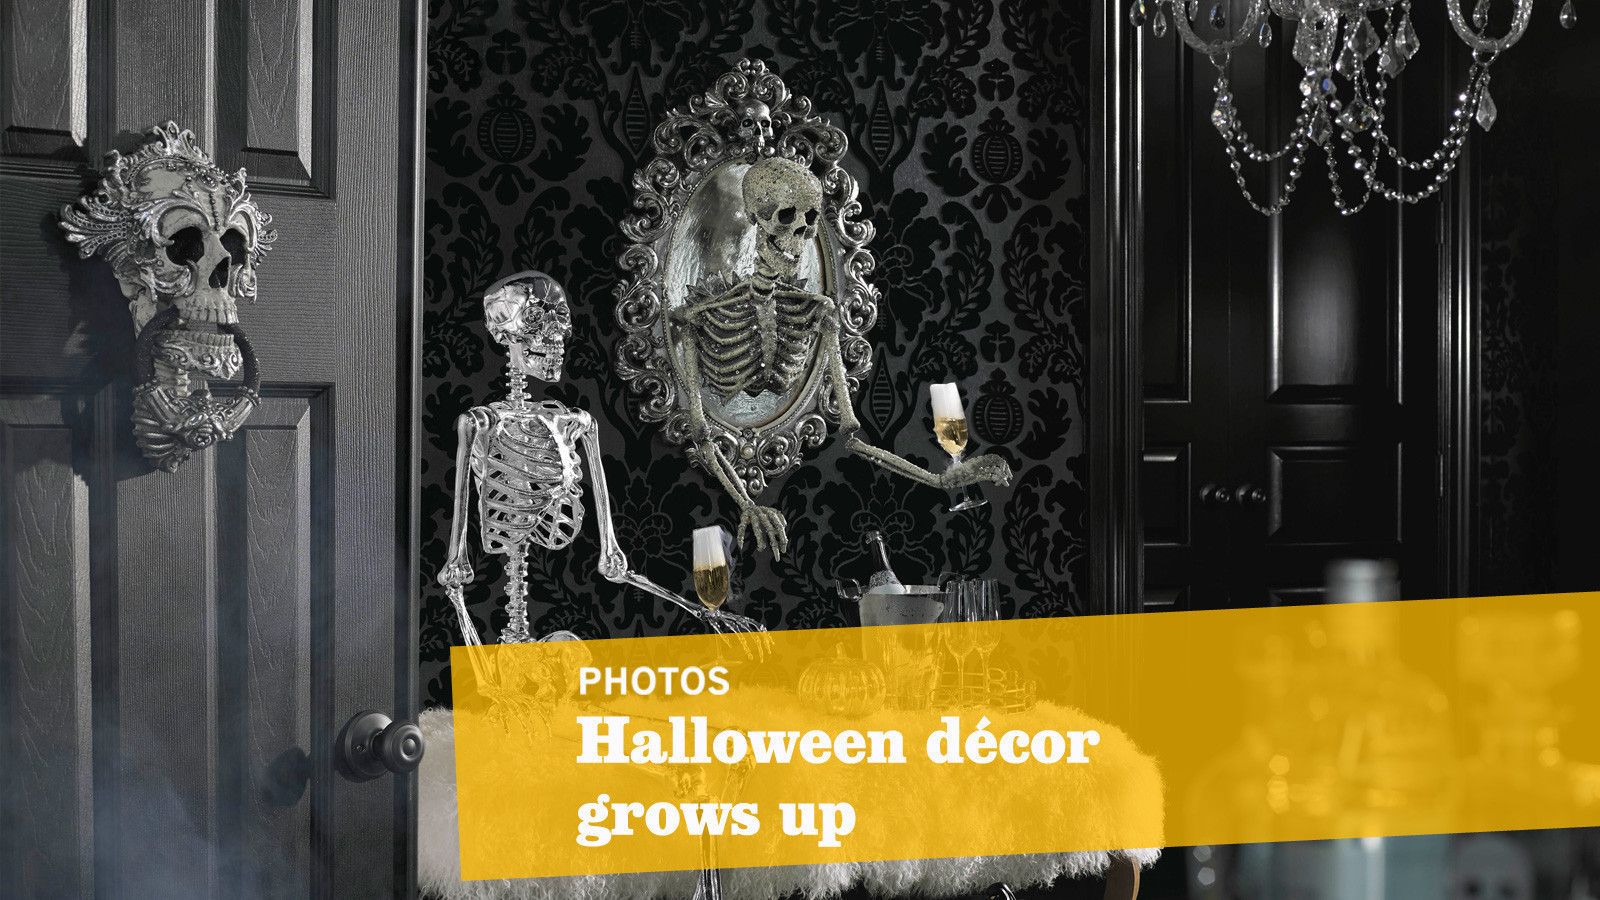 Upscale Home Decor Catalogs Halloween Decor Can Be Scary Yet Sophisticated Here S How